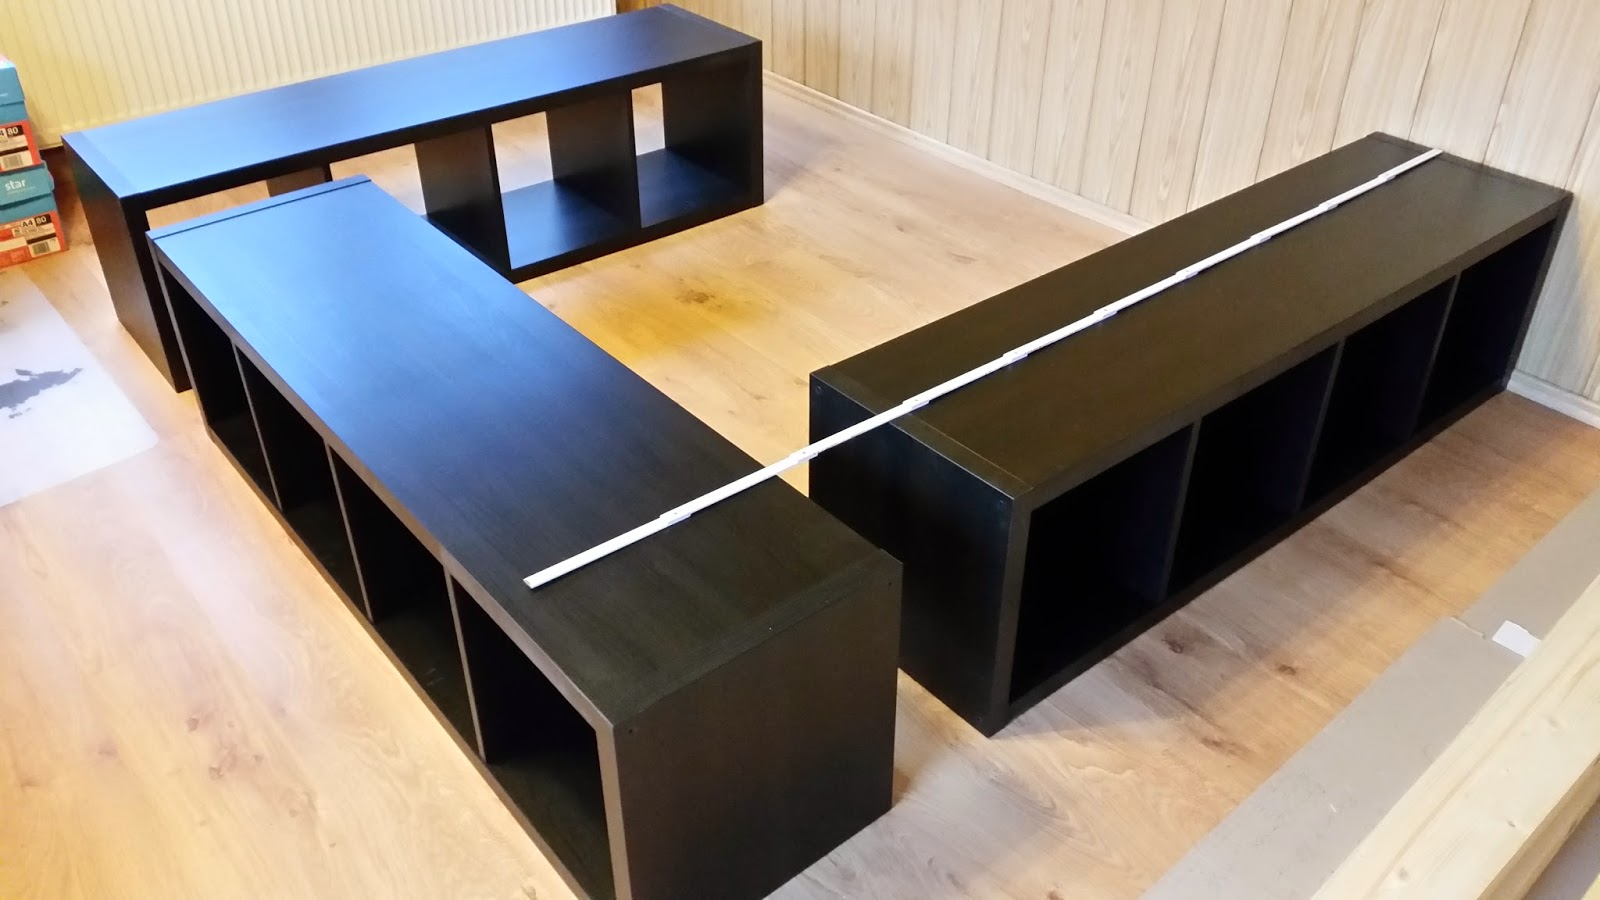 ikea hack aus kallax wird ein bett. Black Bedroom Furniture Sets. Home Design Ideas